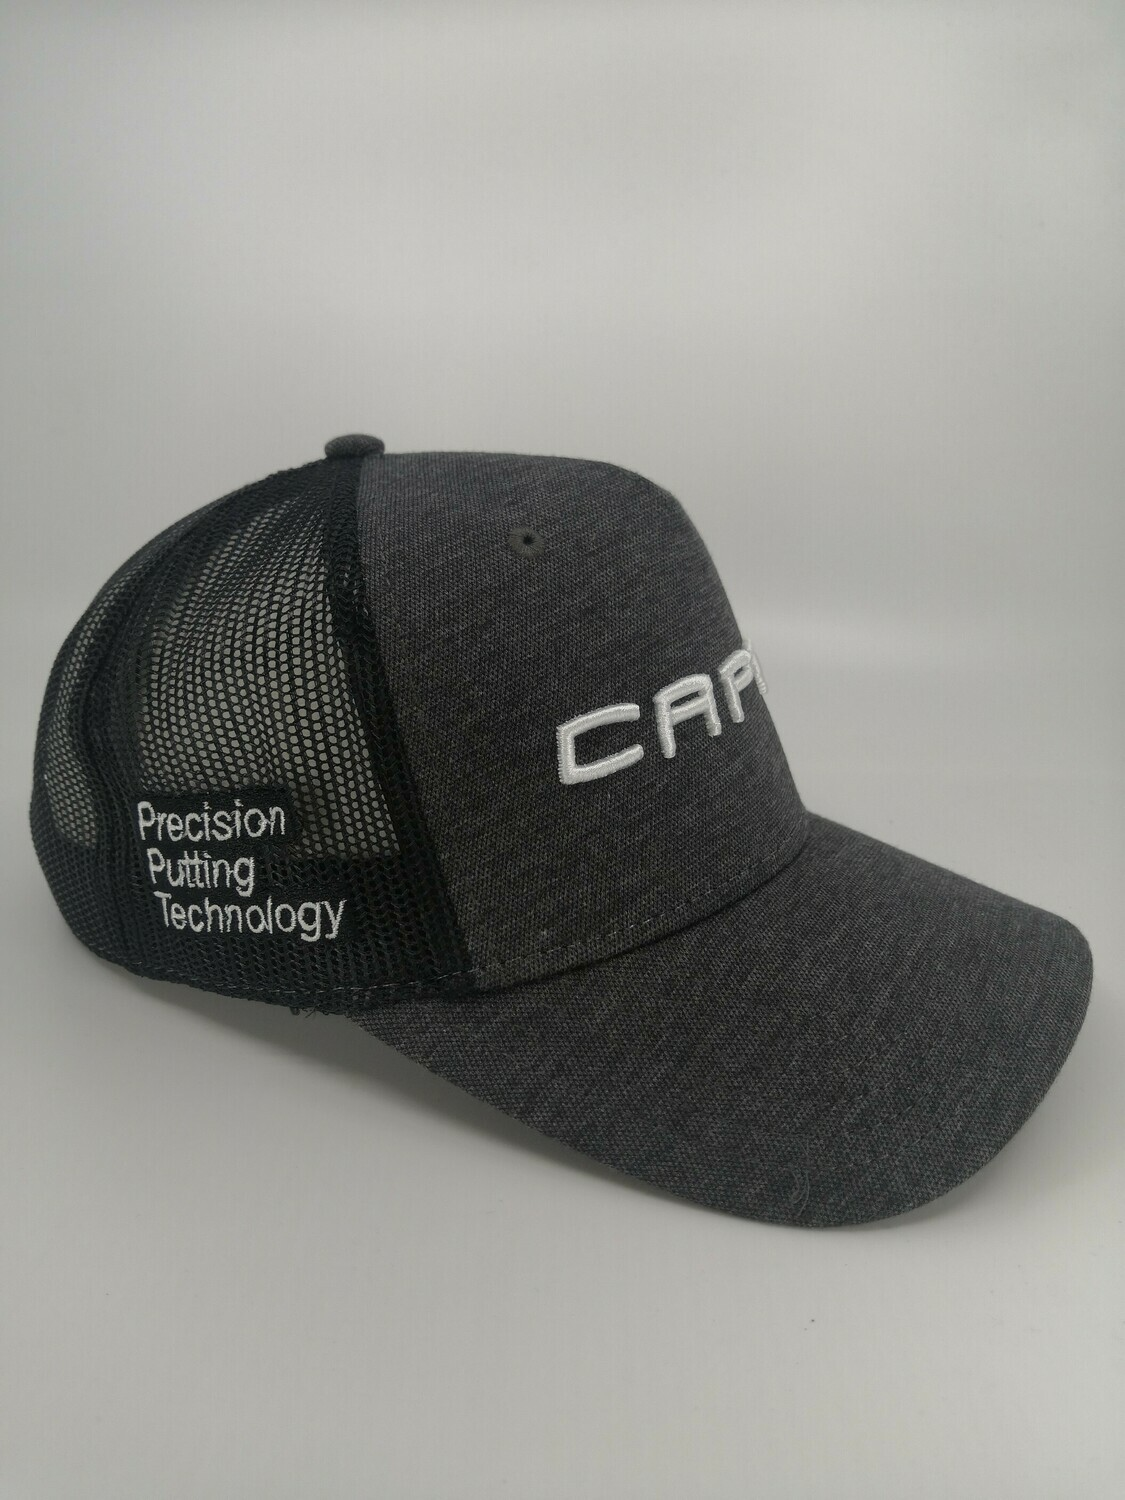 Capto perforated grey 3d logo cap